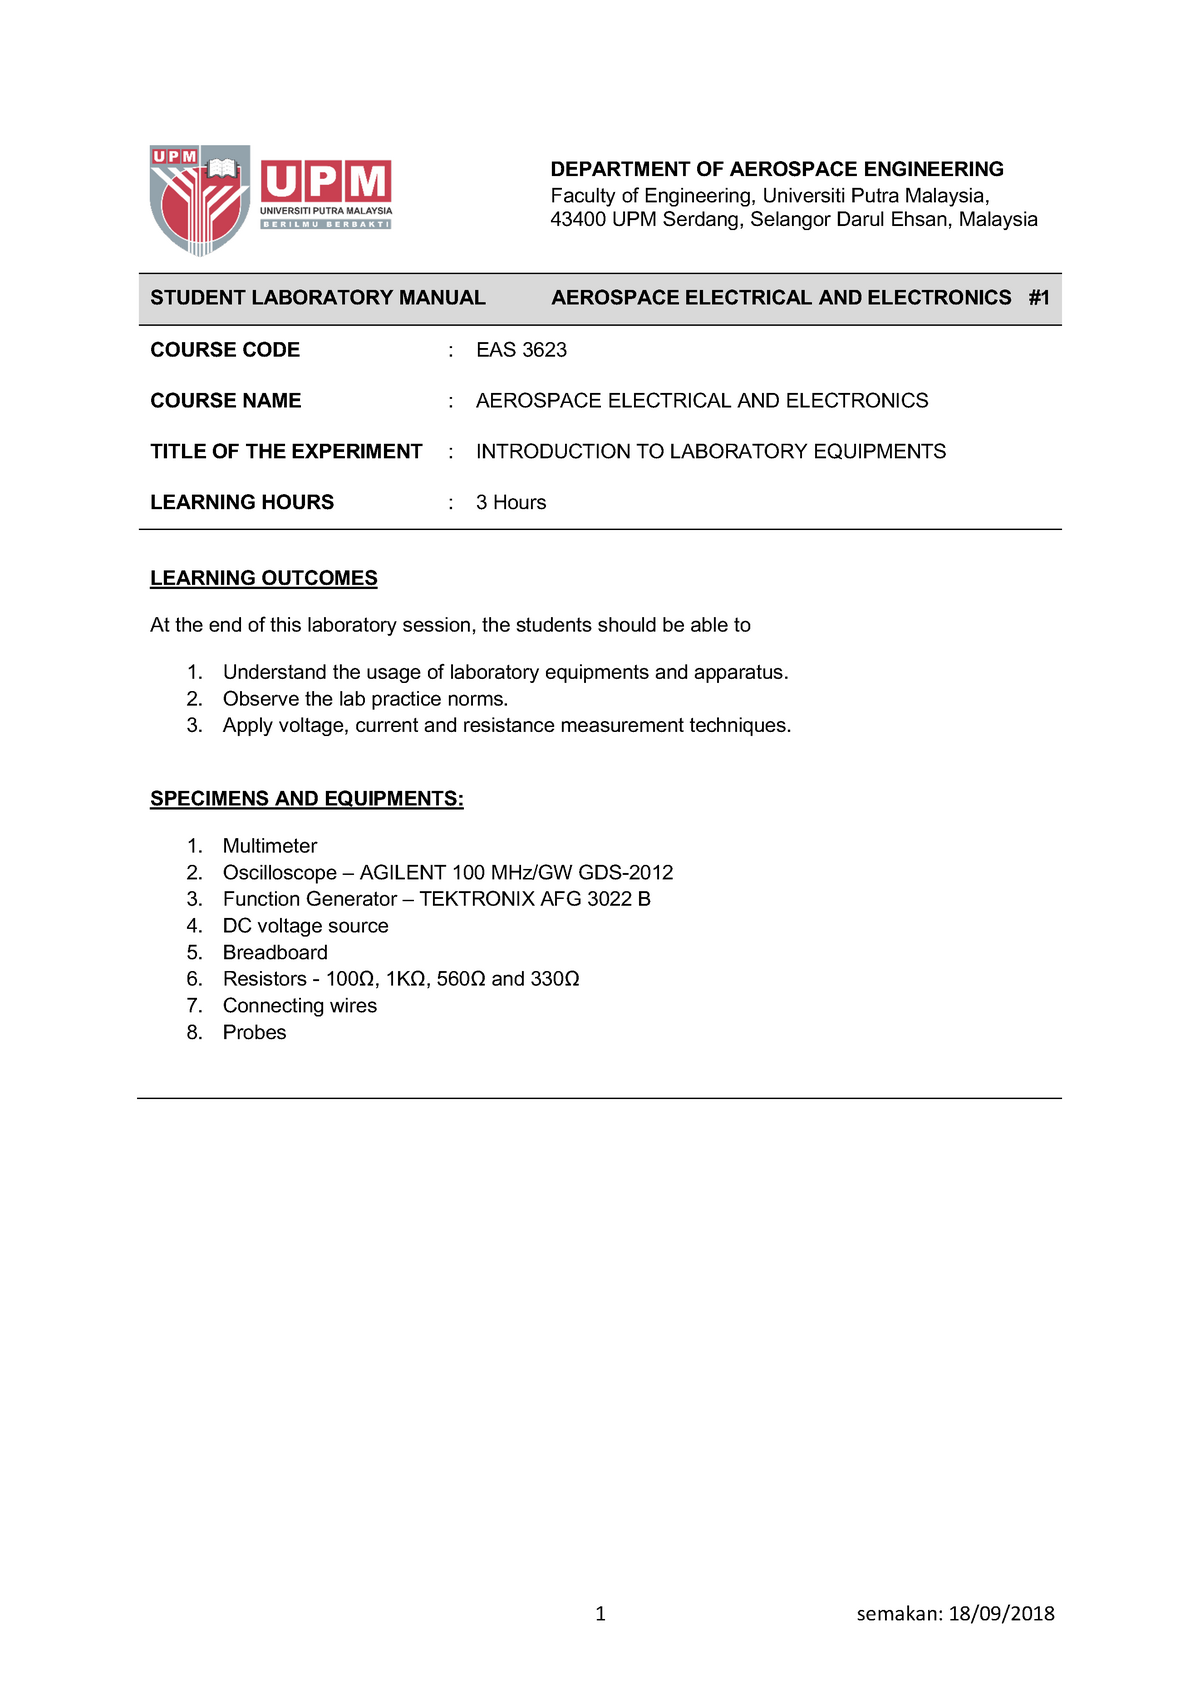 LAB Manual EXP 1 - Introduction to Lab Equipments rev1